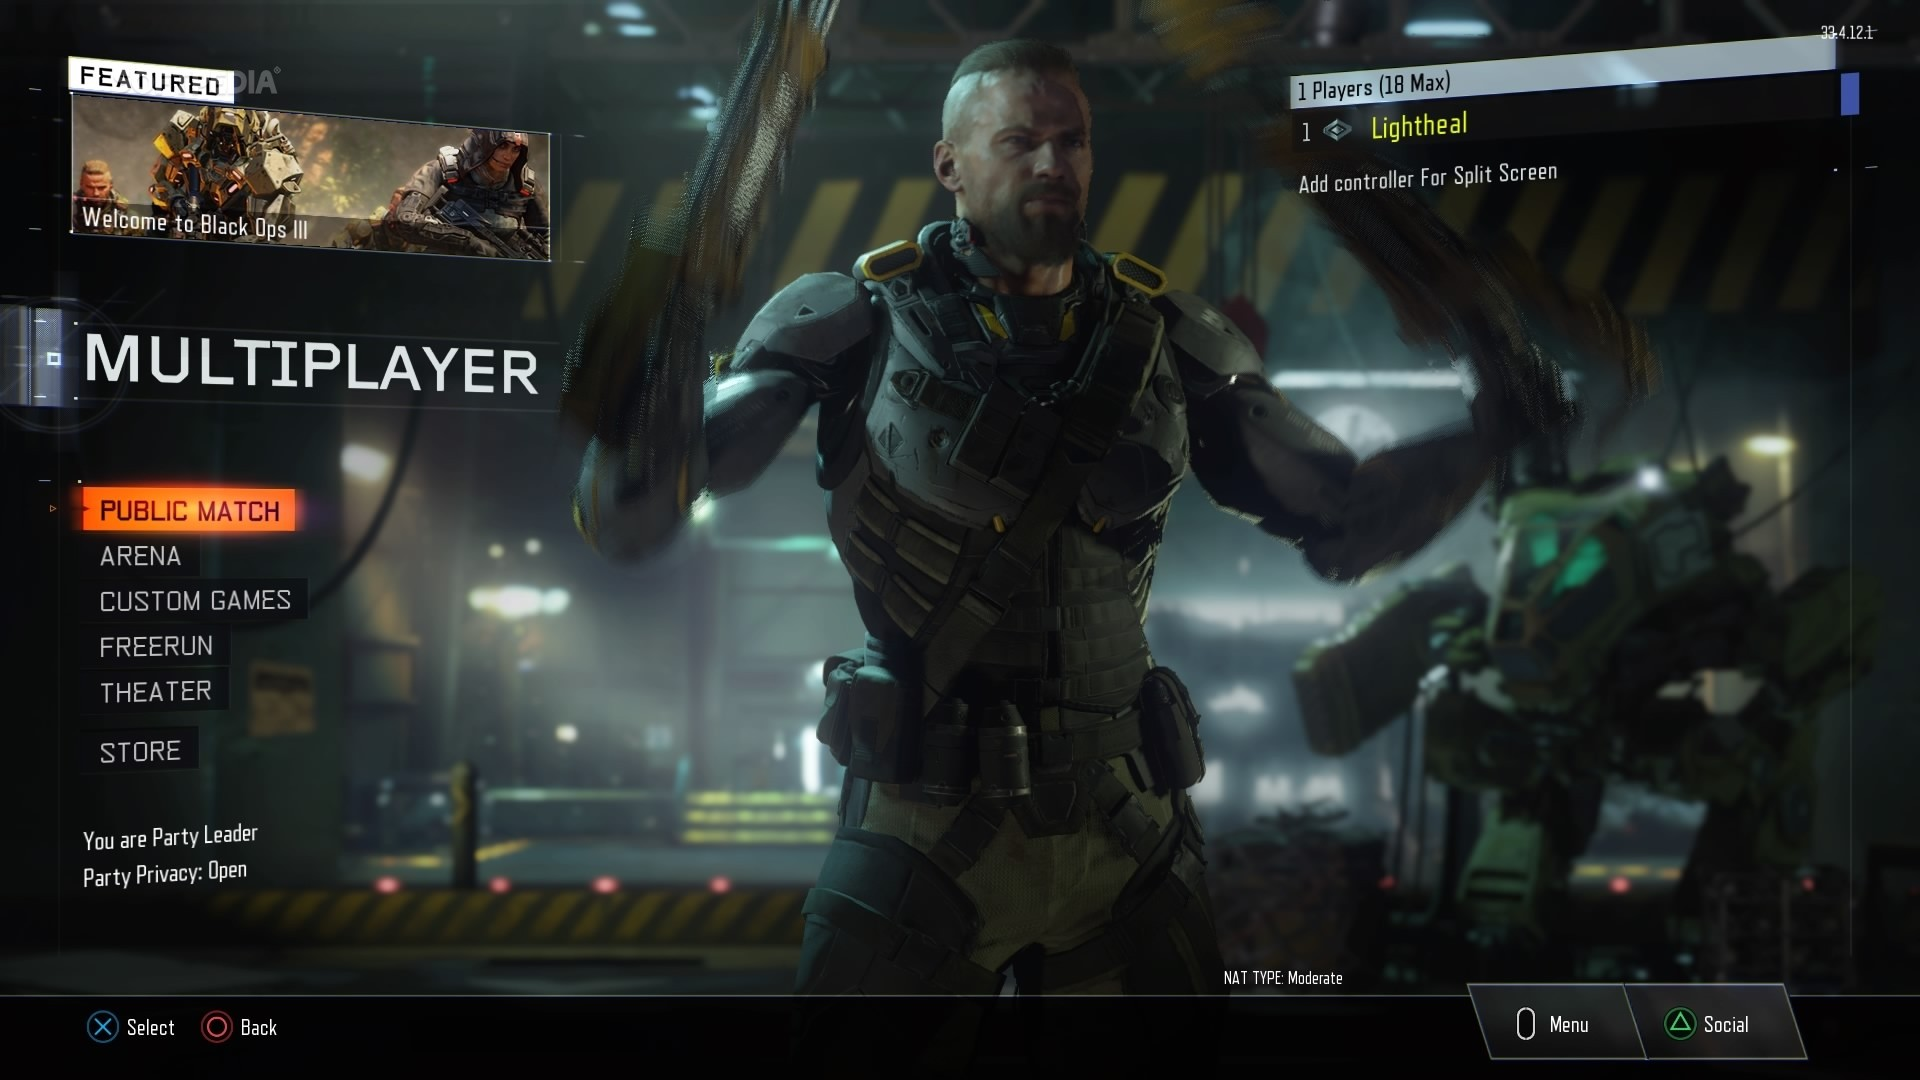 Call of Duty: Black Ops III Review (PS4) - Fun Now